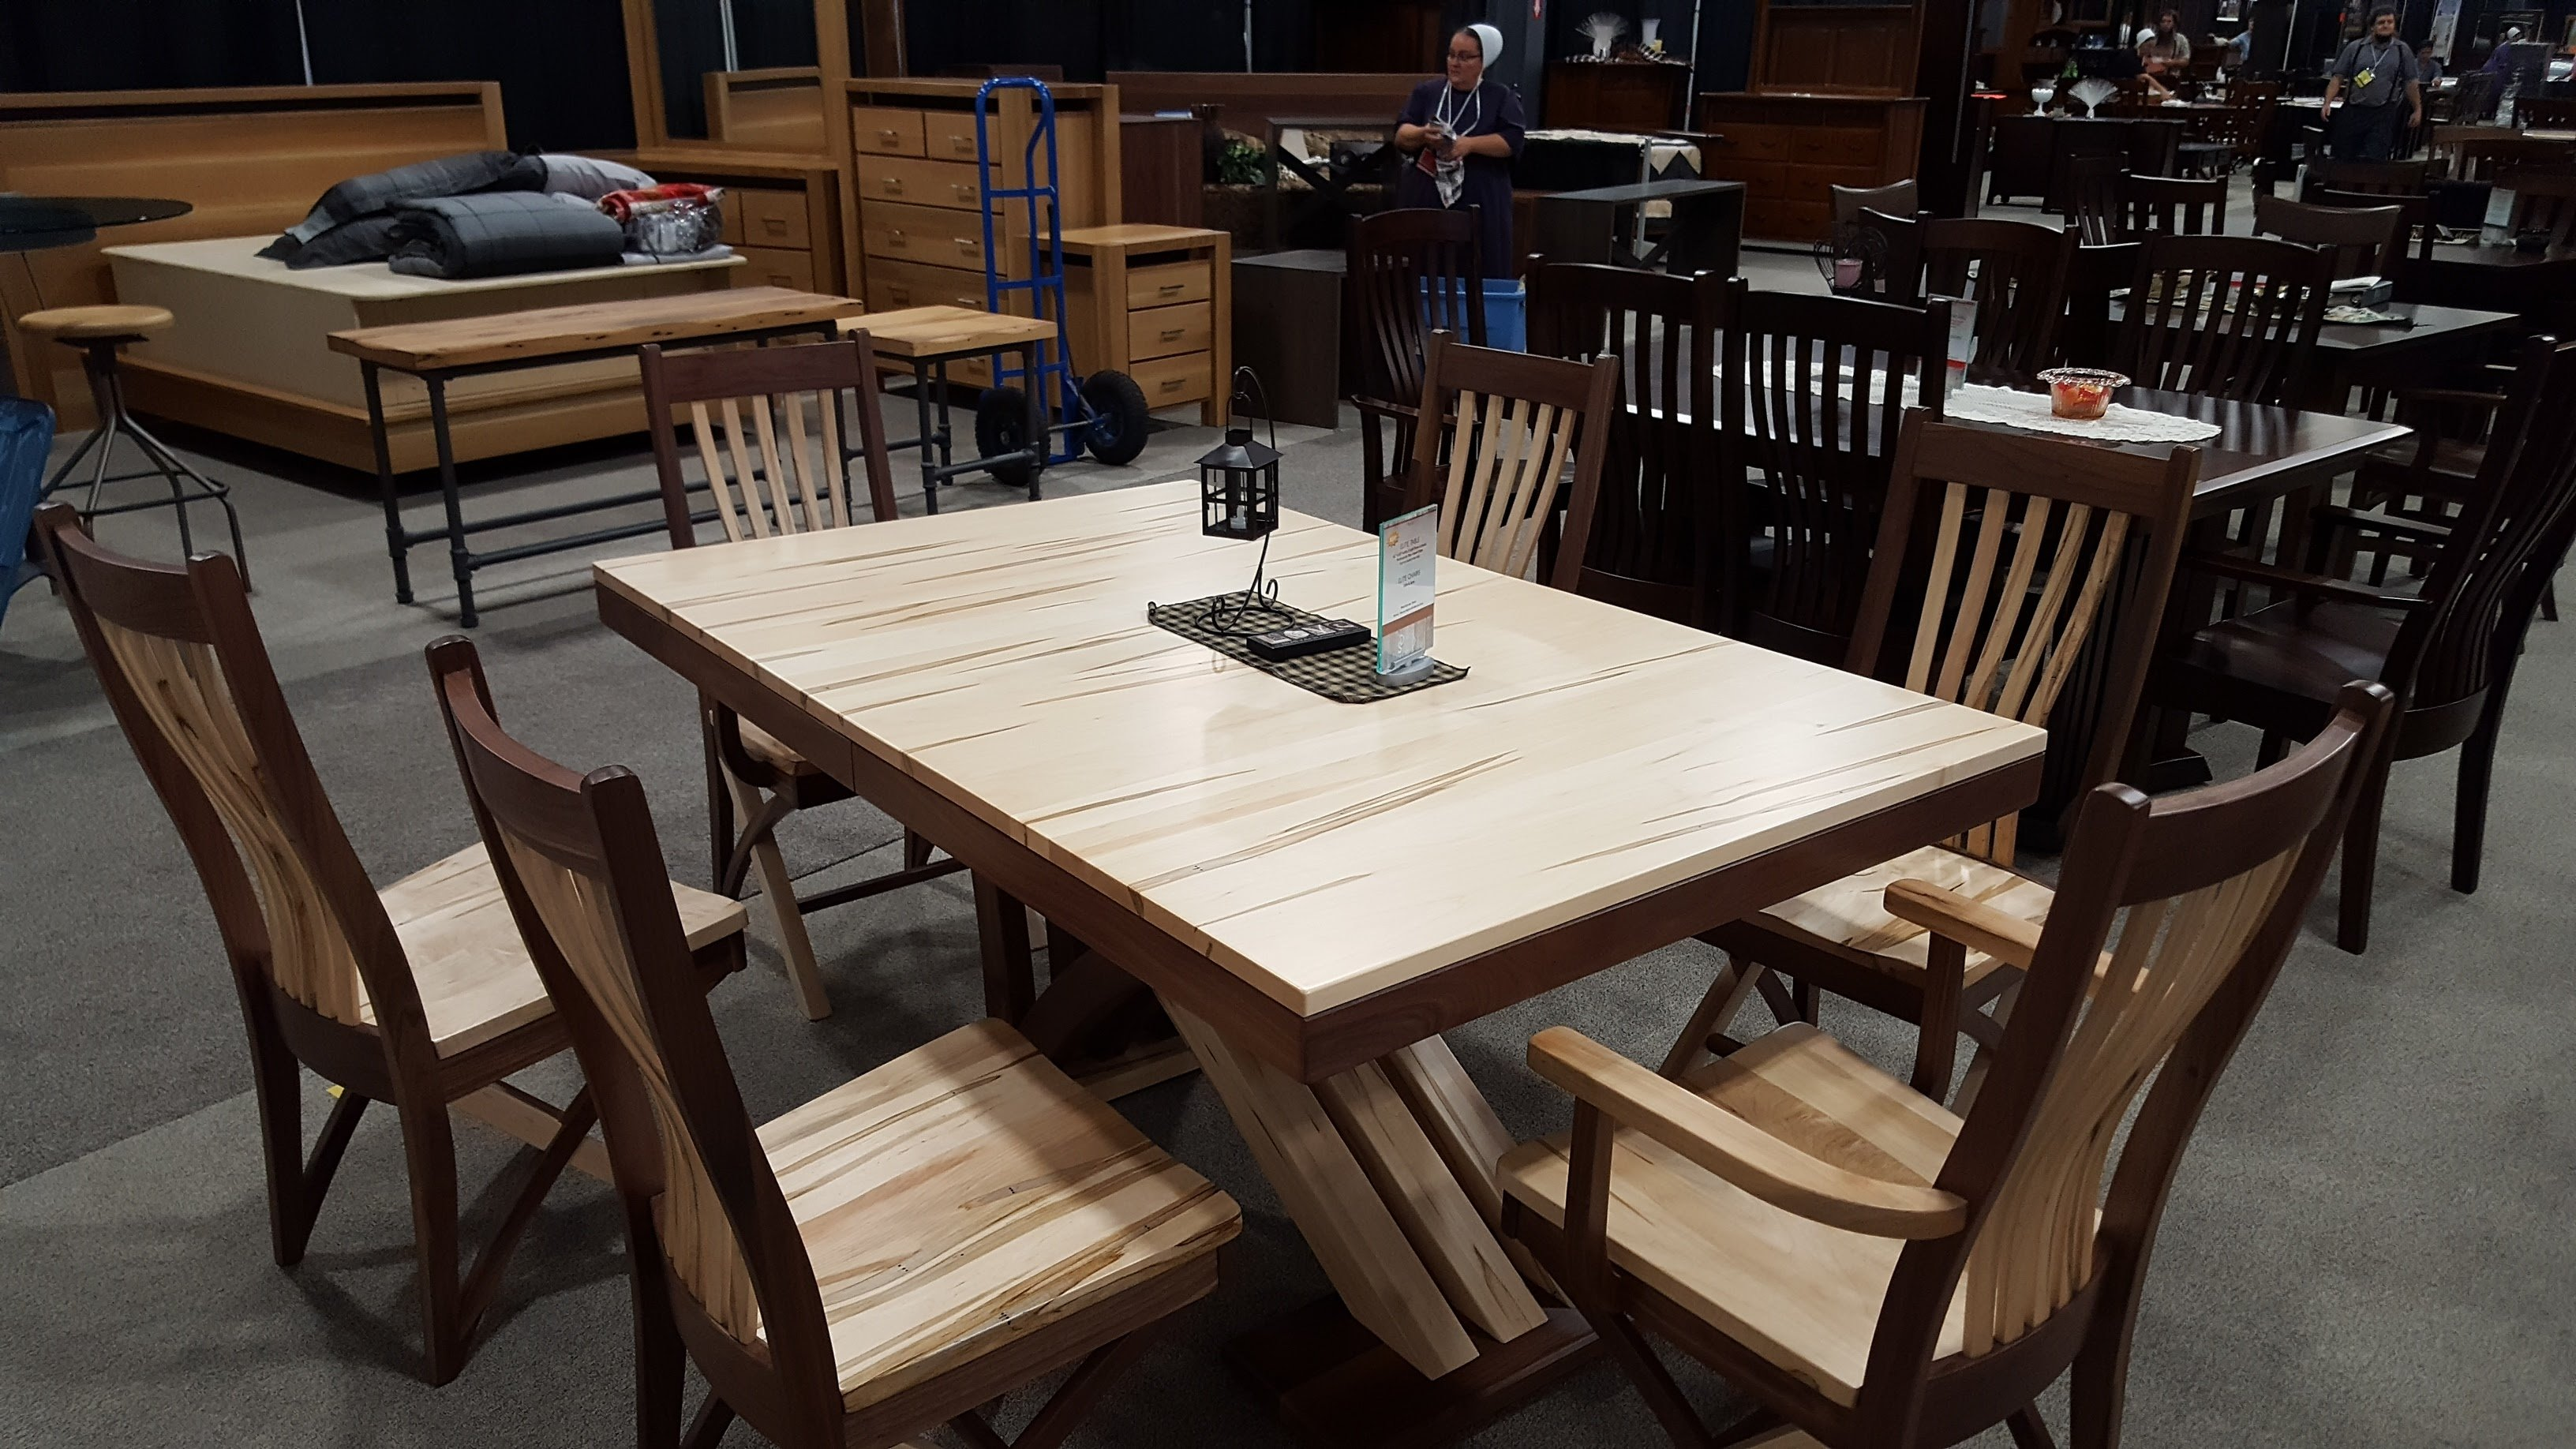 Expo Features The Best Of American Made Furniture Wood Grains Furniture Amp Gifts Rocky Mount Va